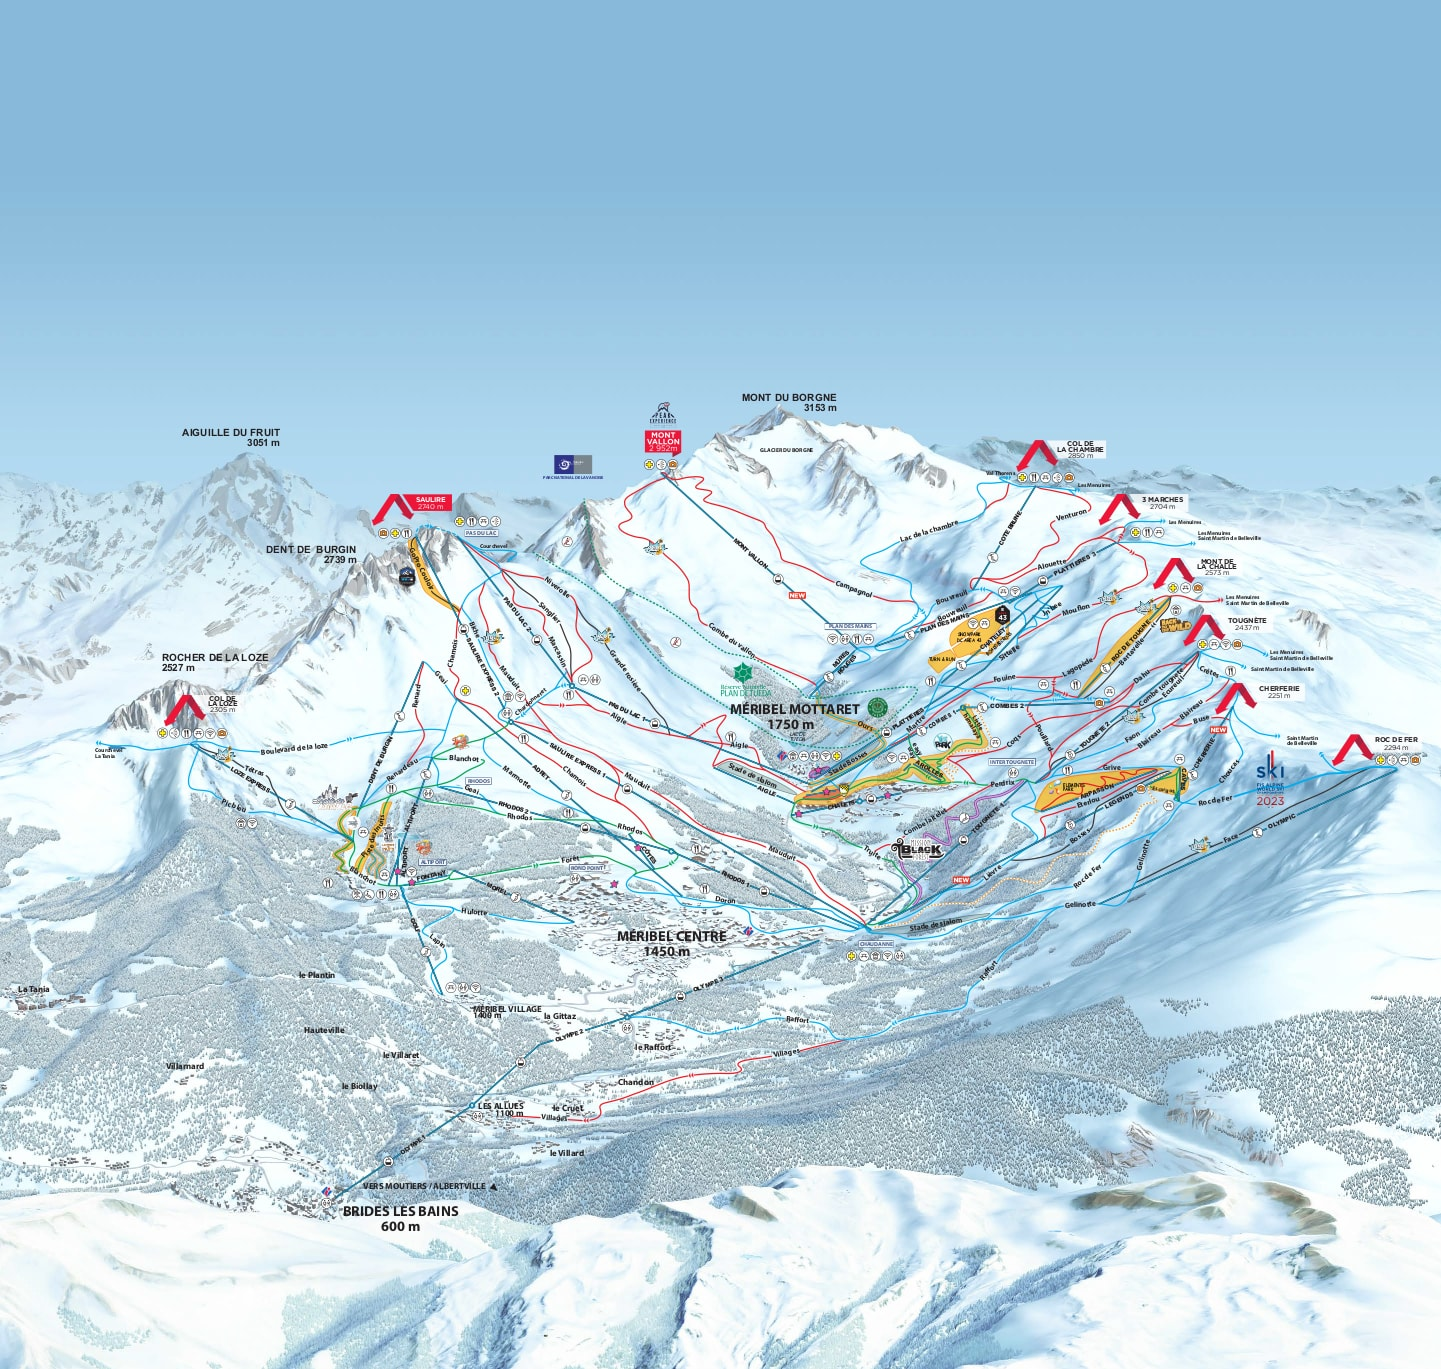 Meribel Ski Map Meribel Piste Map Meribel Ski Map